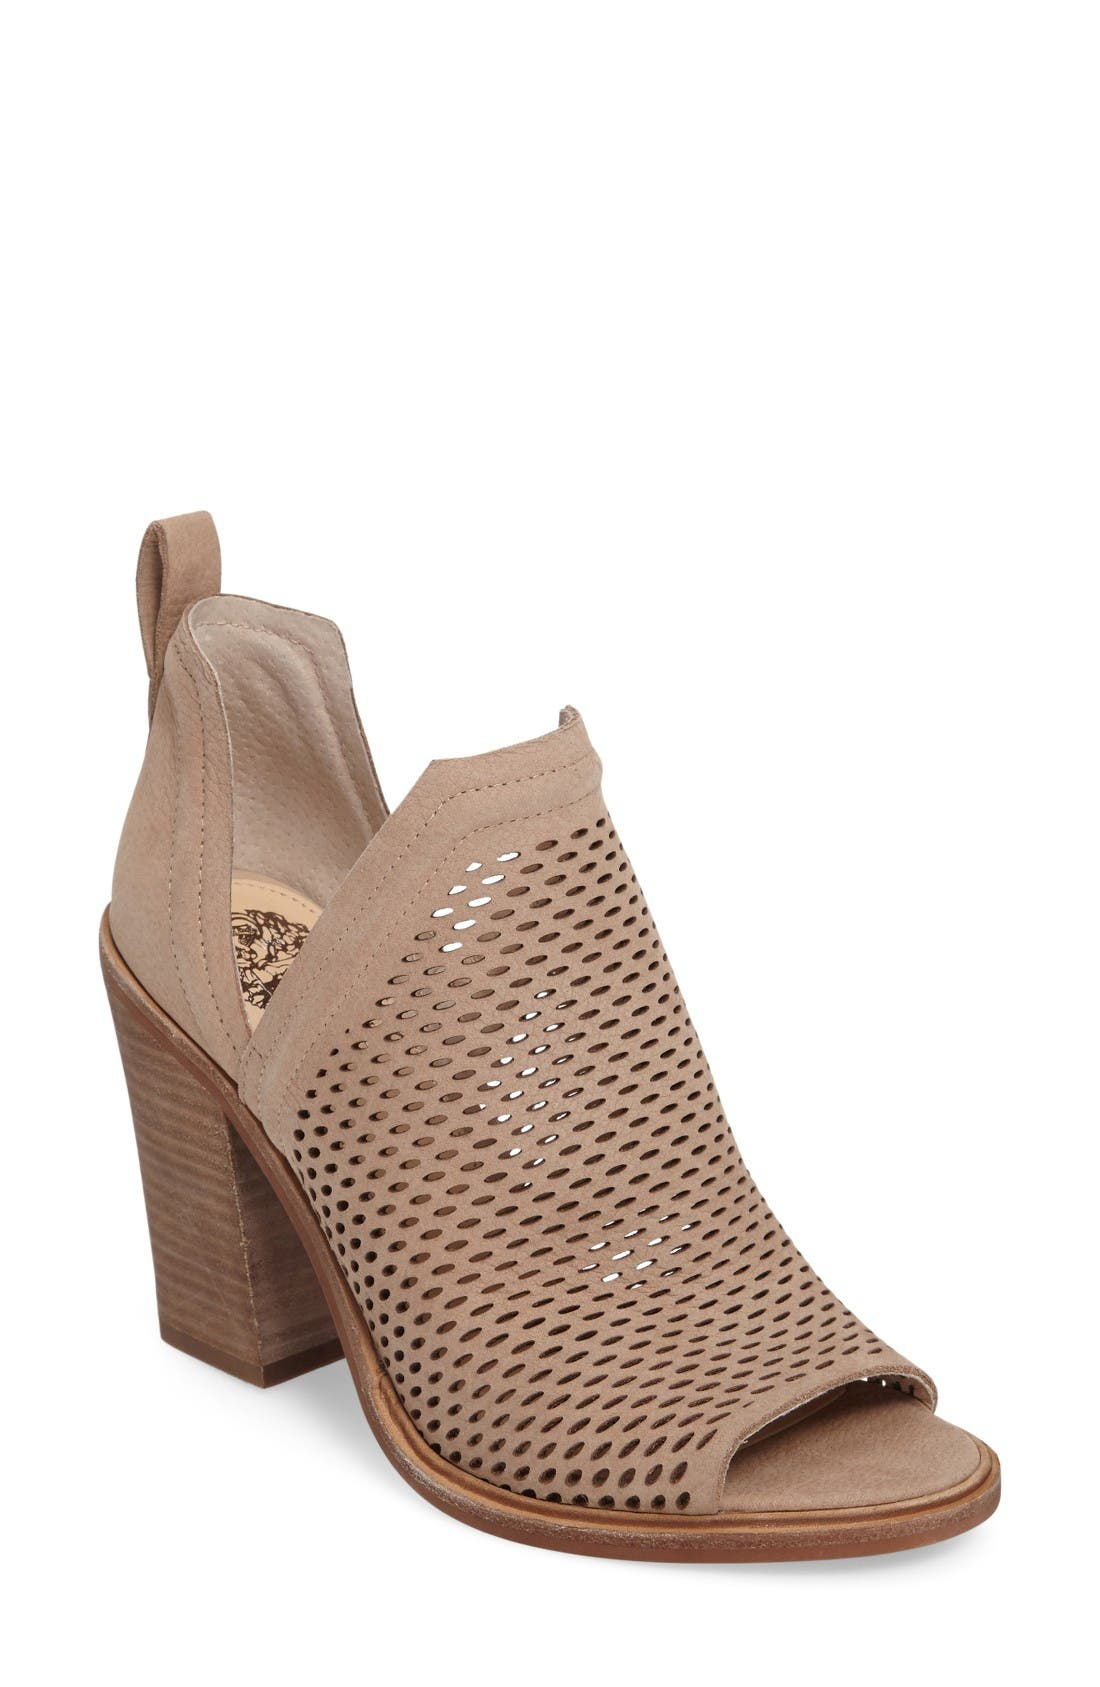 Kensa Peep Toe Bootie,                         Main,                         color, Almond Beige Nubuck Leather